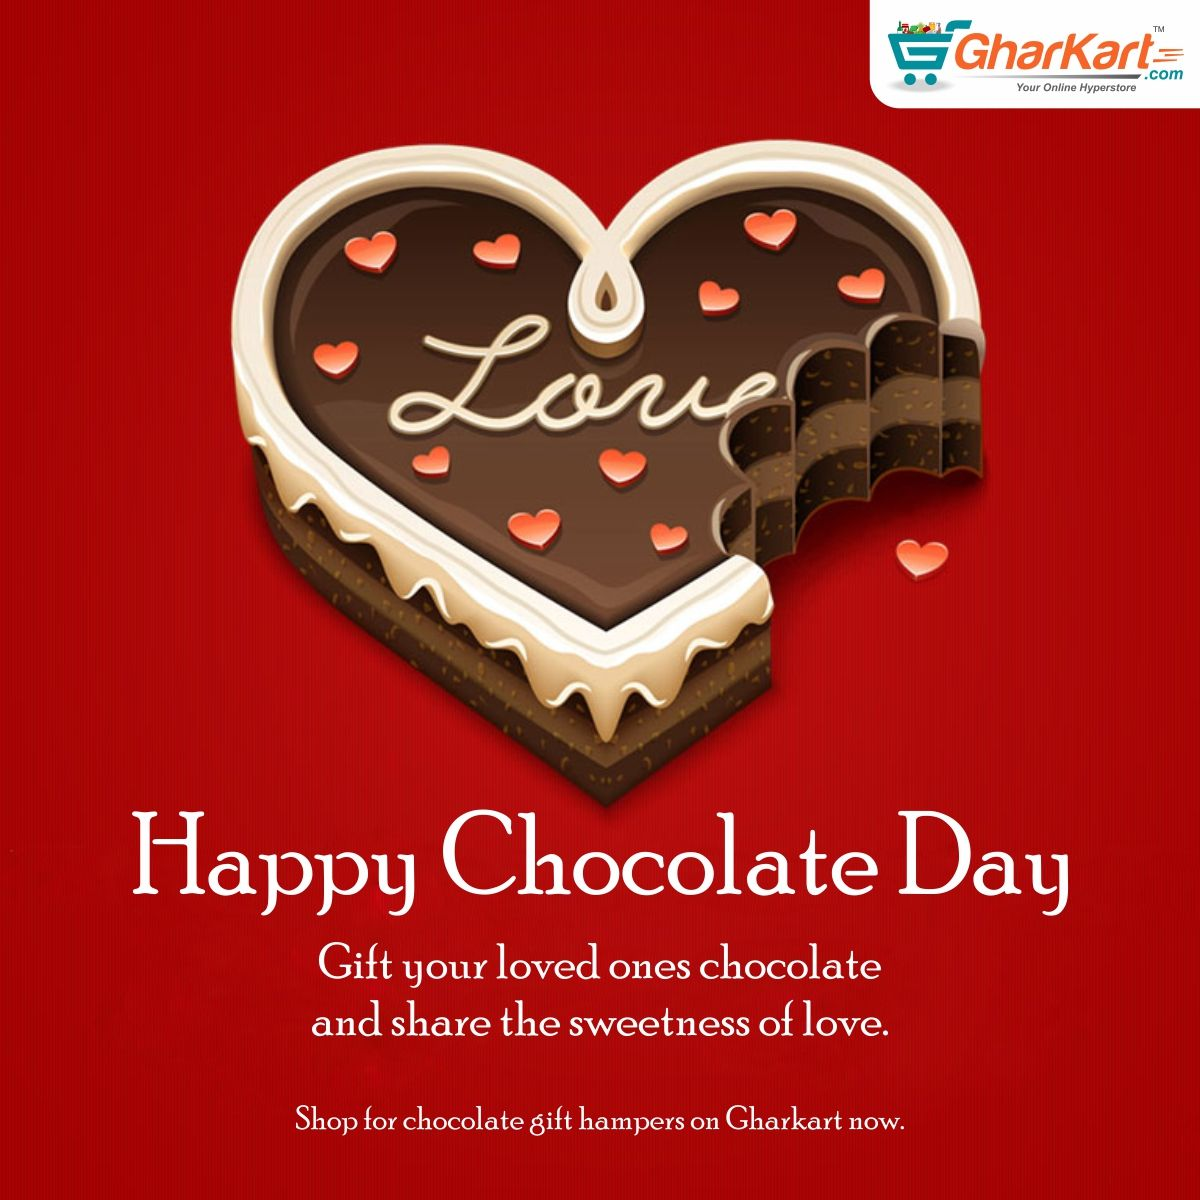 The Third Day Of Valentine Week Is Here Chocolate Day Chocolates Will Quickly Make You Fall In Happy Chocolate Day Chocolate Day Happy Chocolate Day Images Love name happy chocolate day images